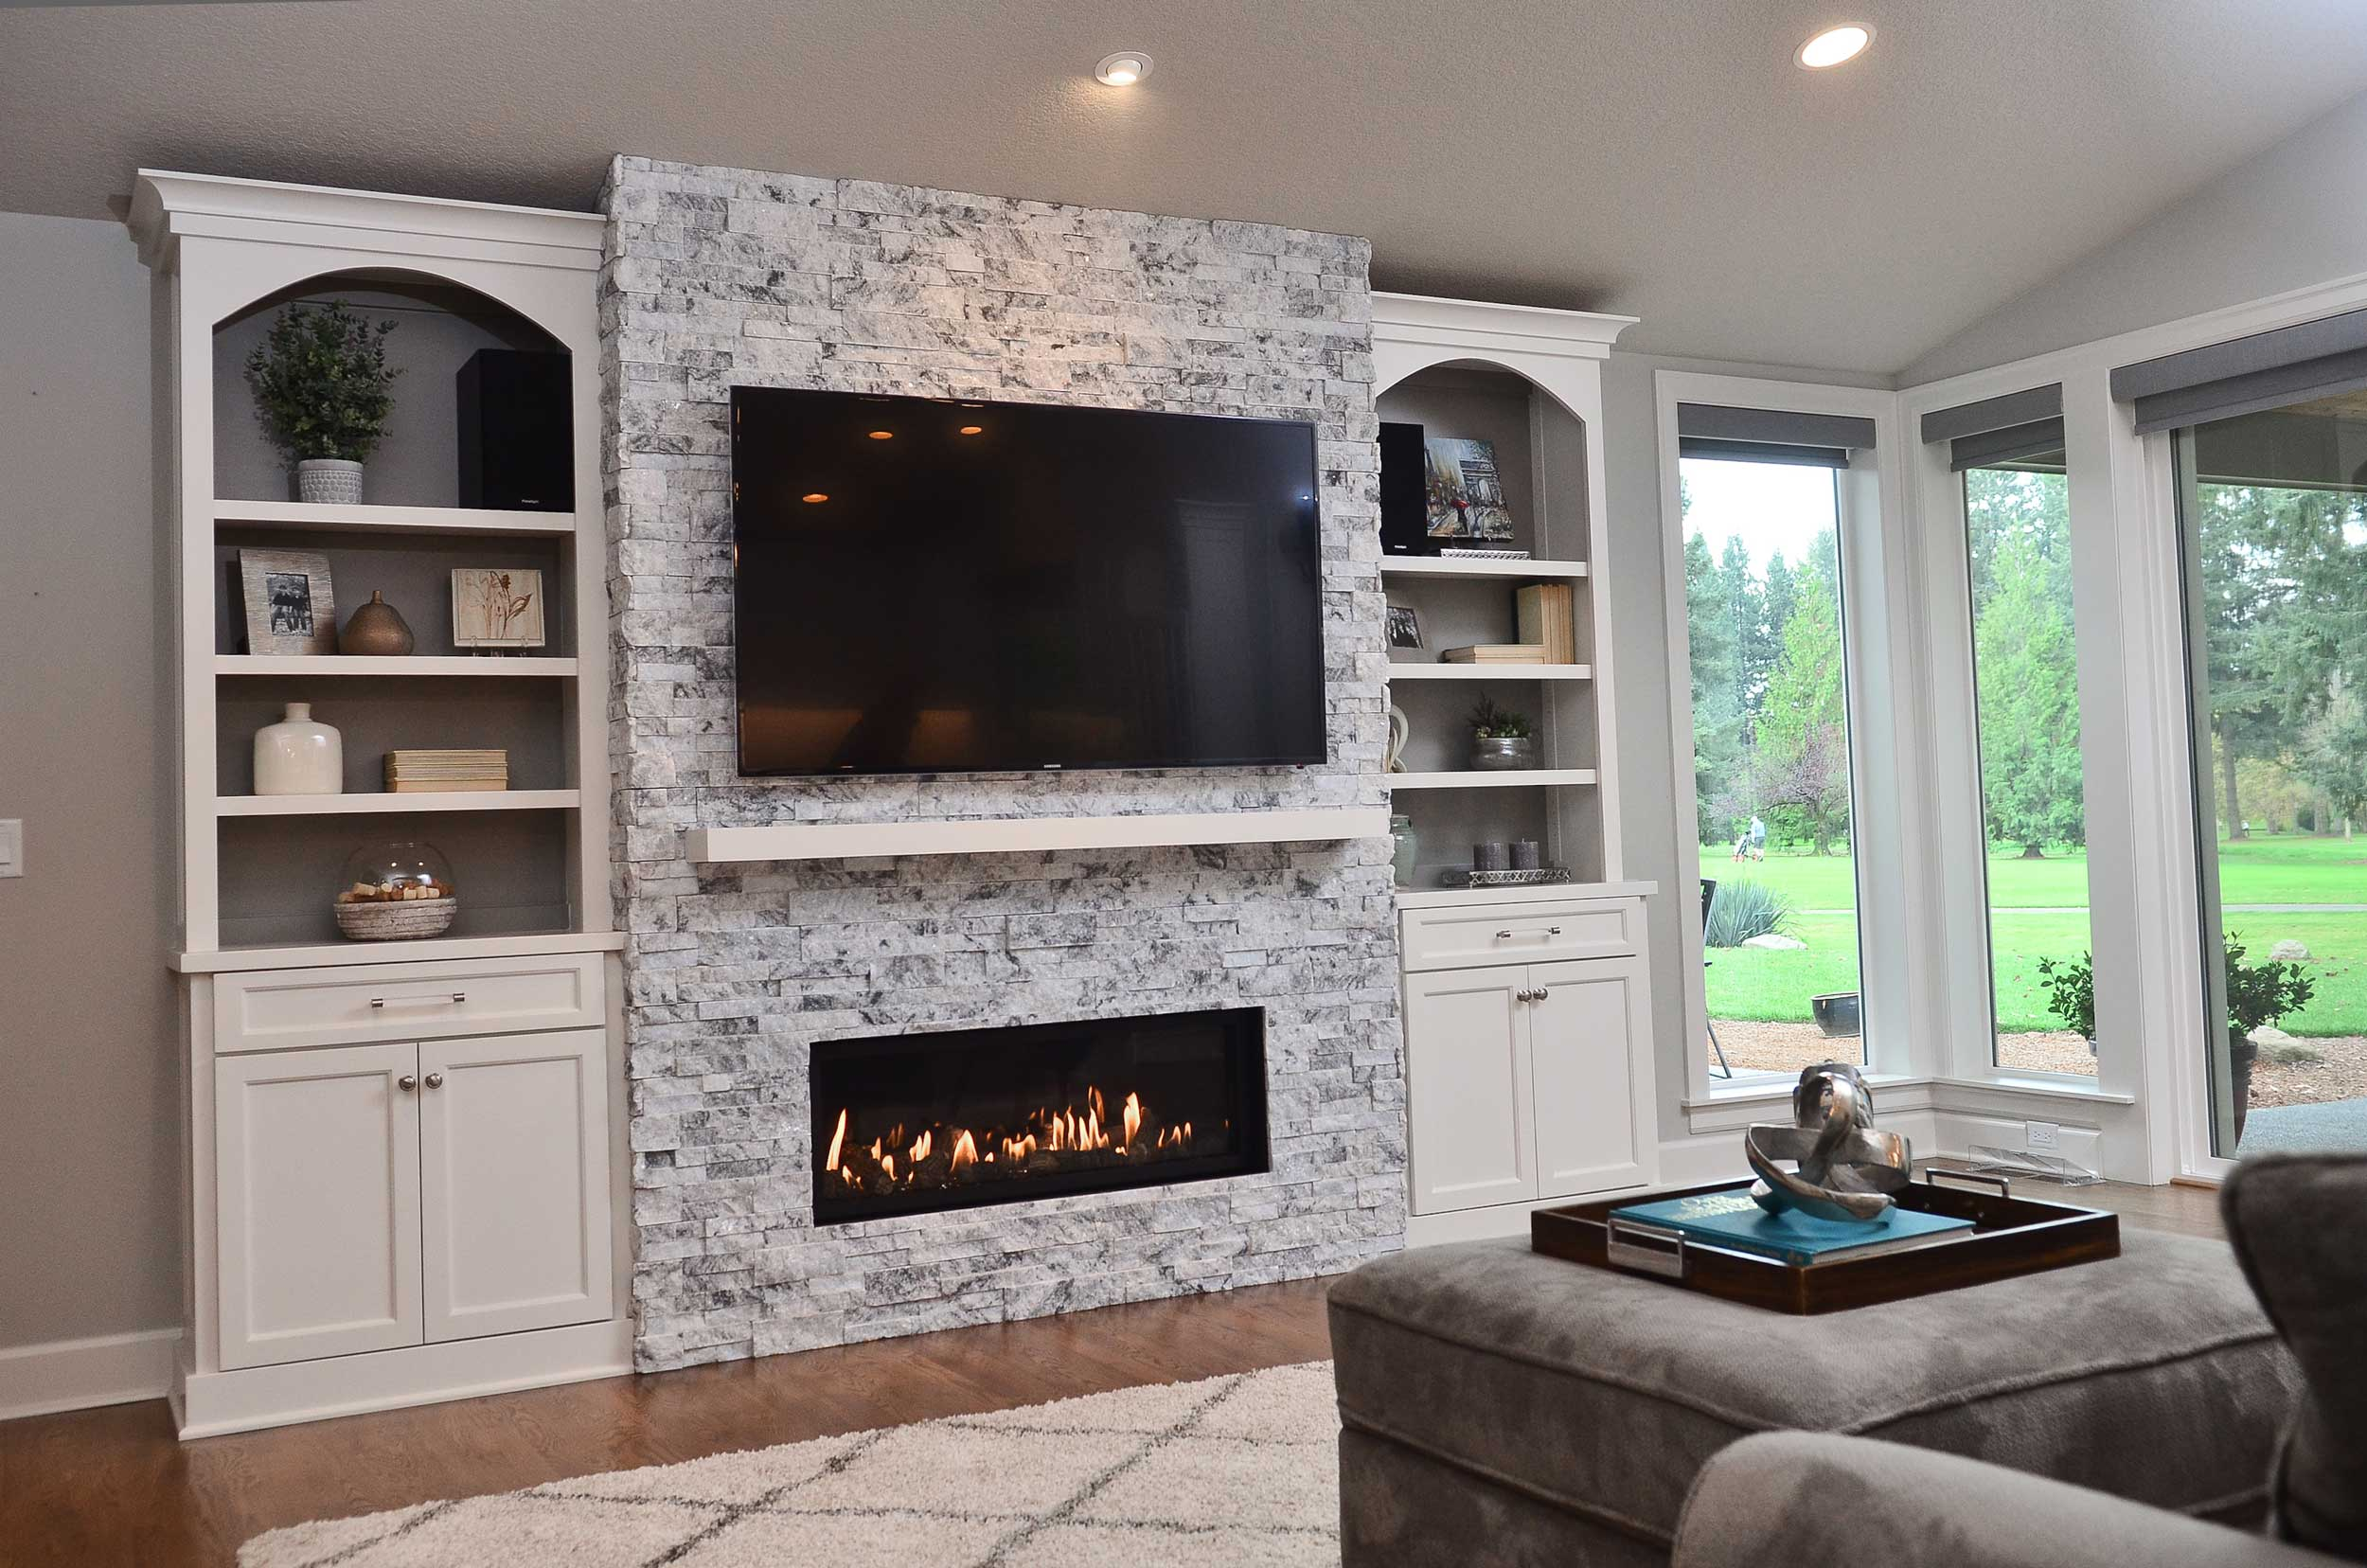 Media wall with built-in bookshelves and TV and fireplace.